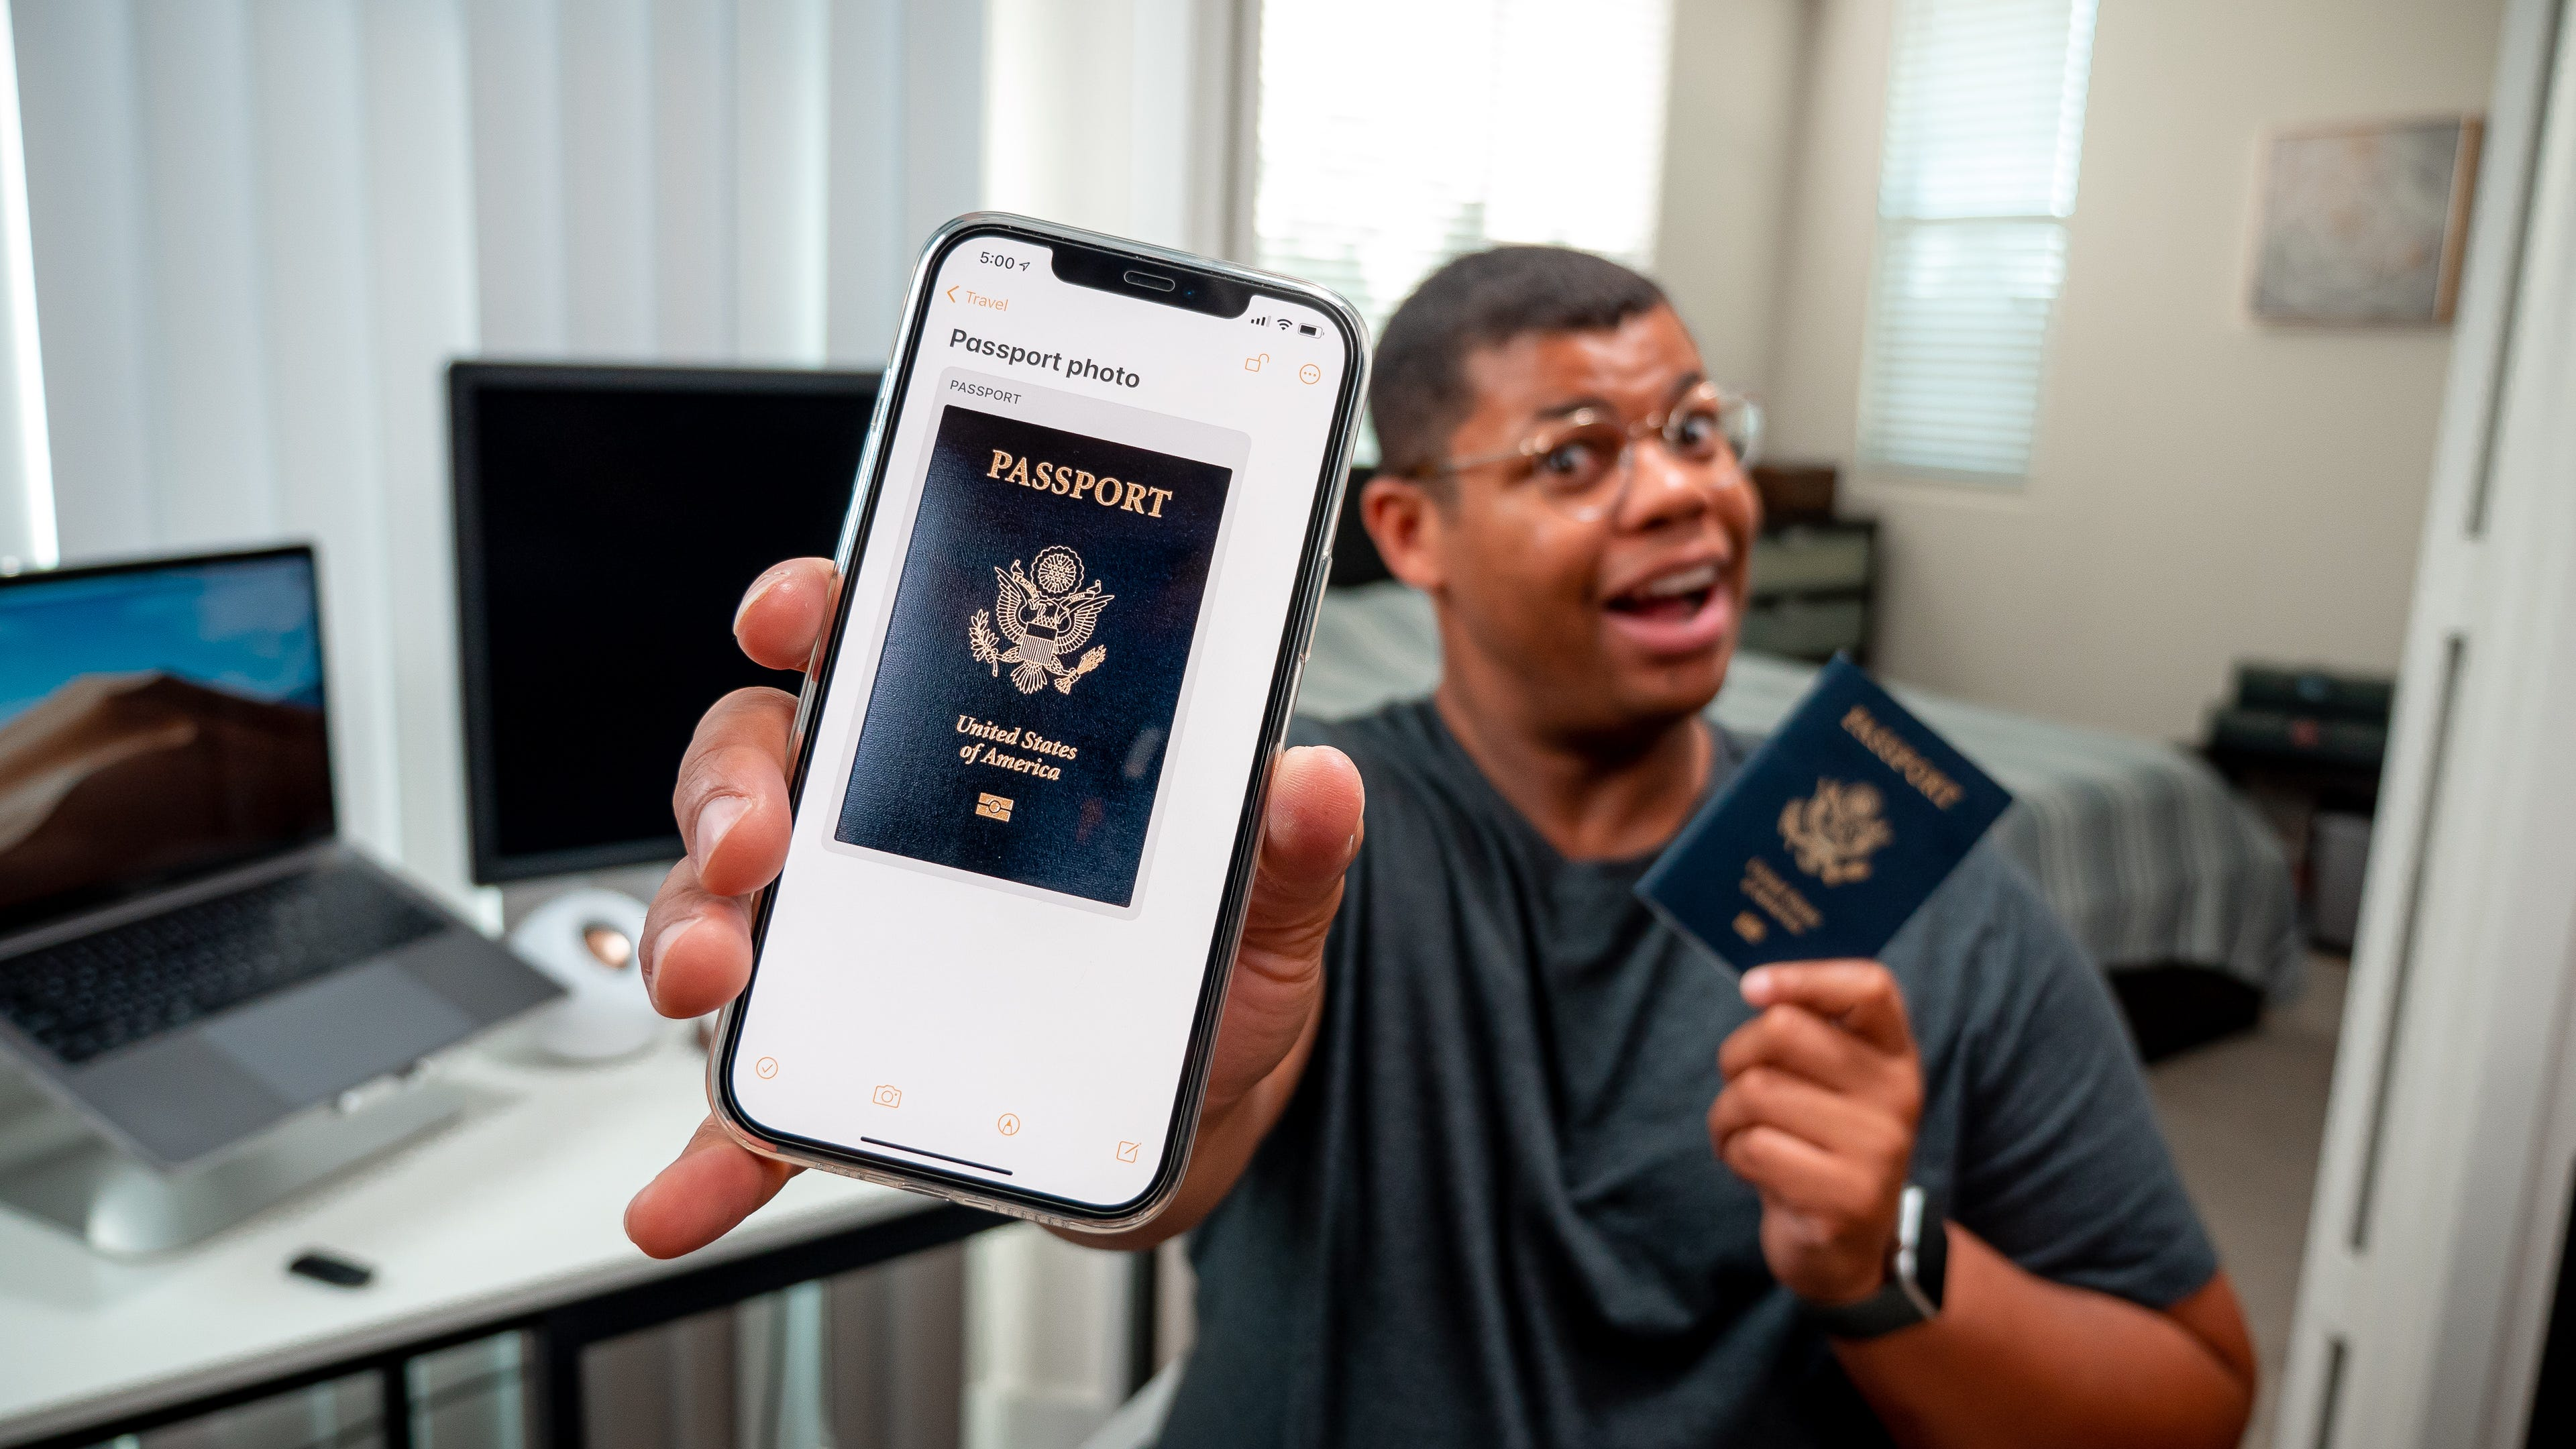 How to keep travel documents secure on phone